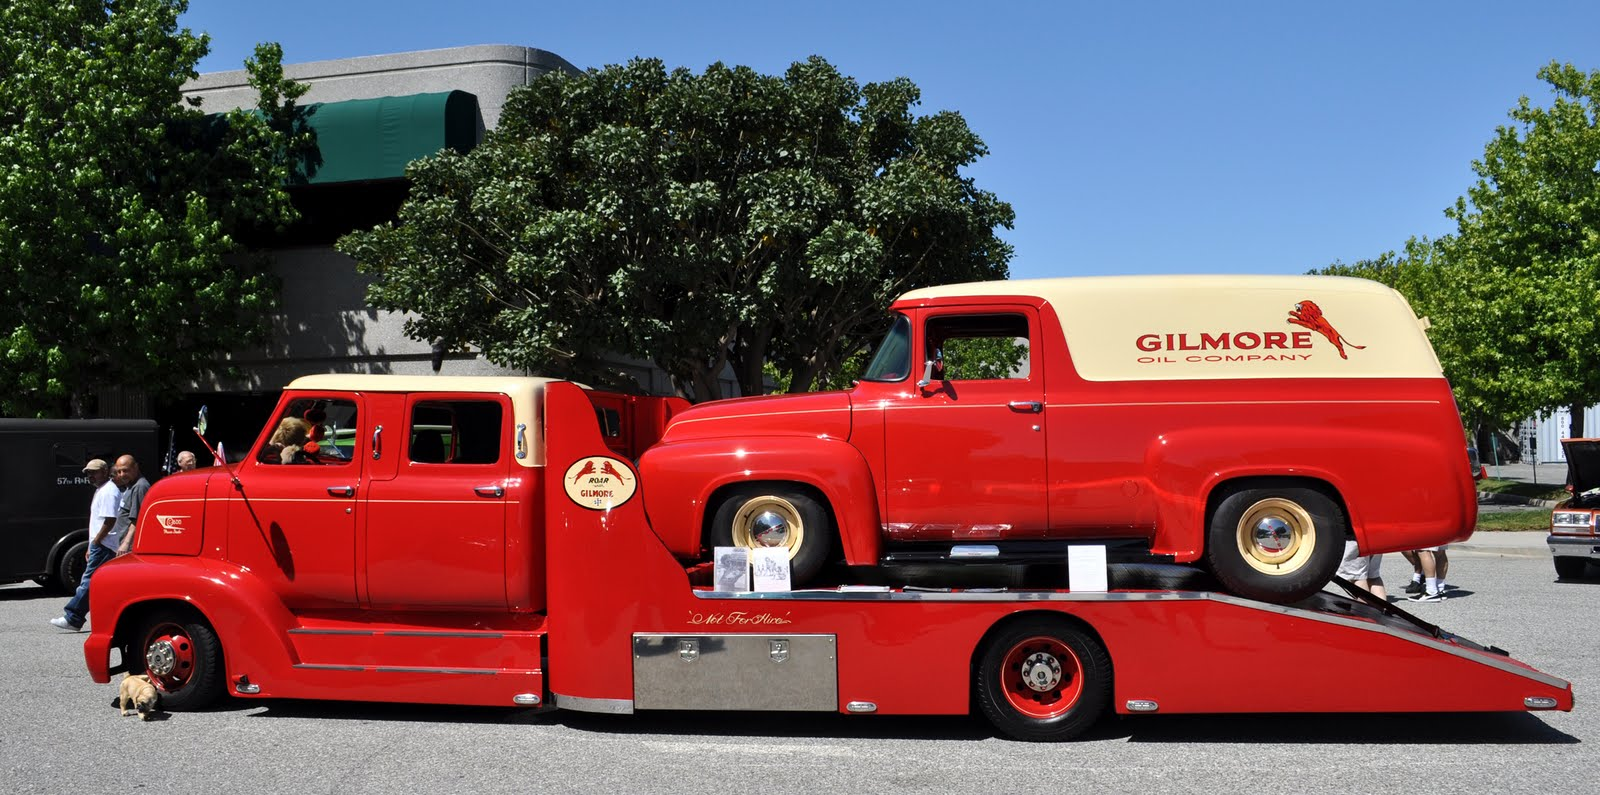 The 53 coe crew cab in gilmore colors has a matching panel truck now